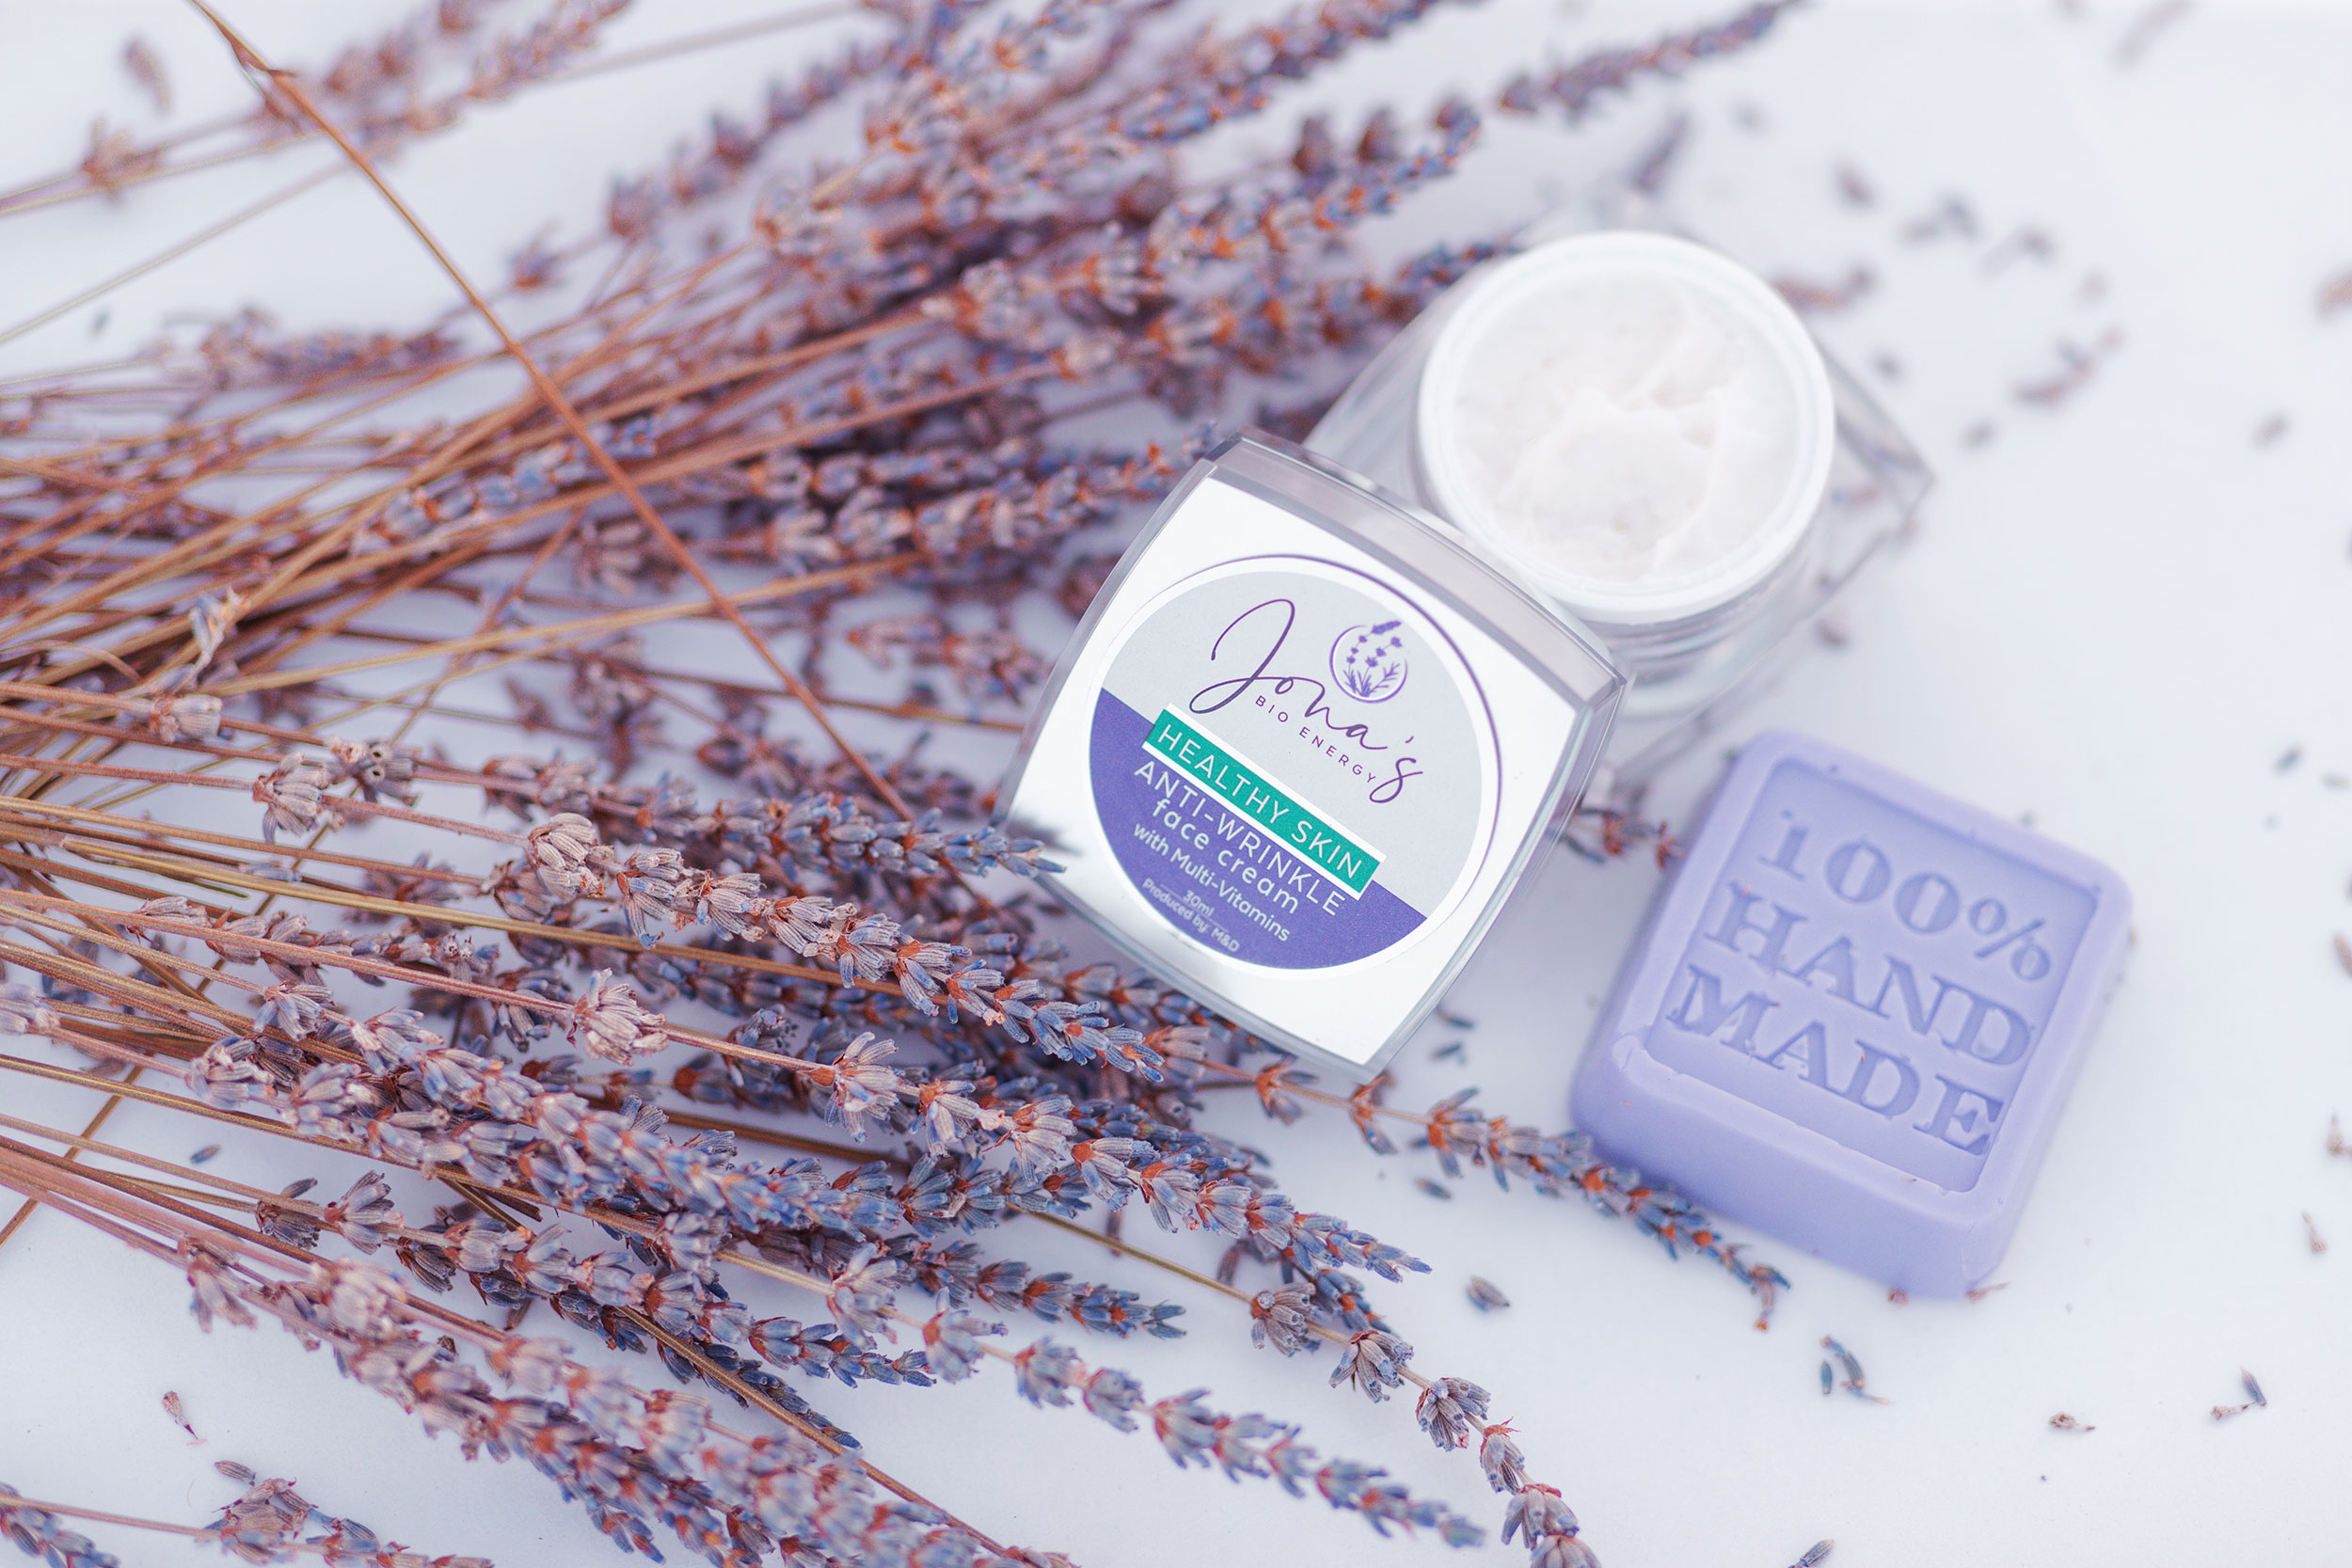 Lavender products photography